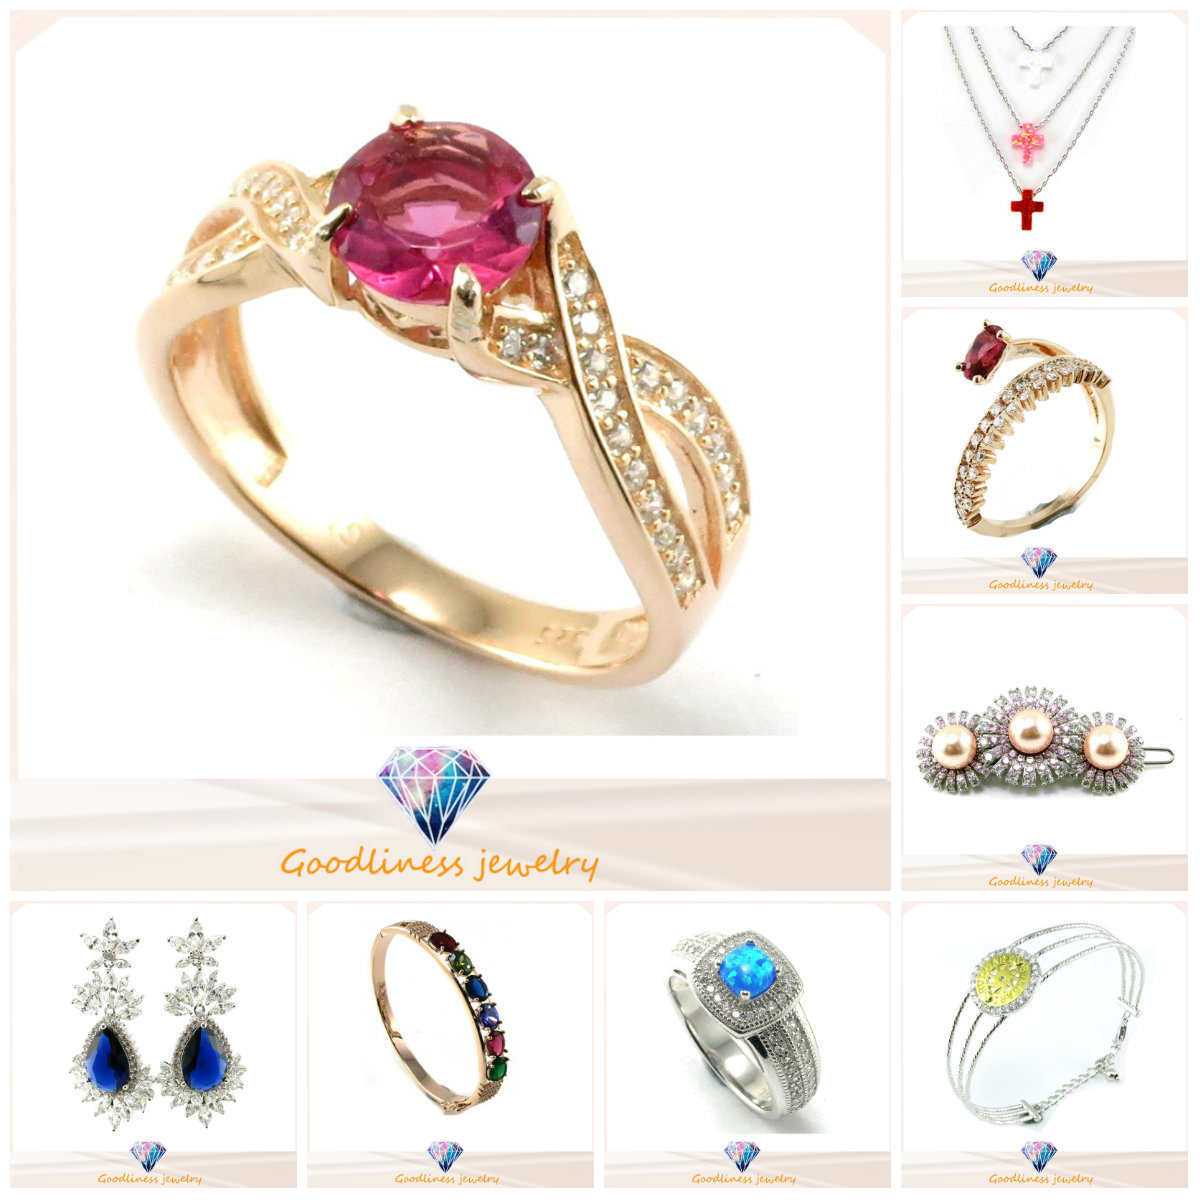 China Wholesale Cheap Fine Imitation Diamond Zircon Stainless Steel Gold Copper Wedding Jewelry for Woman Men Body 925 Sterling Silver Fashion Jewelry (A2r003)